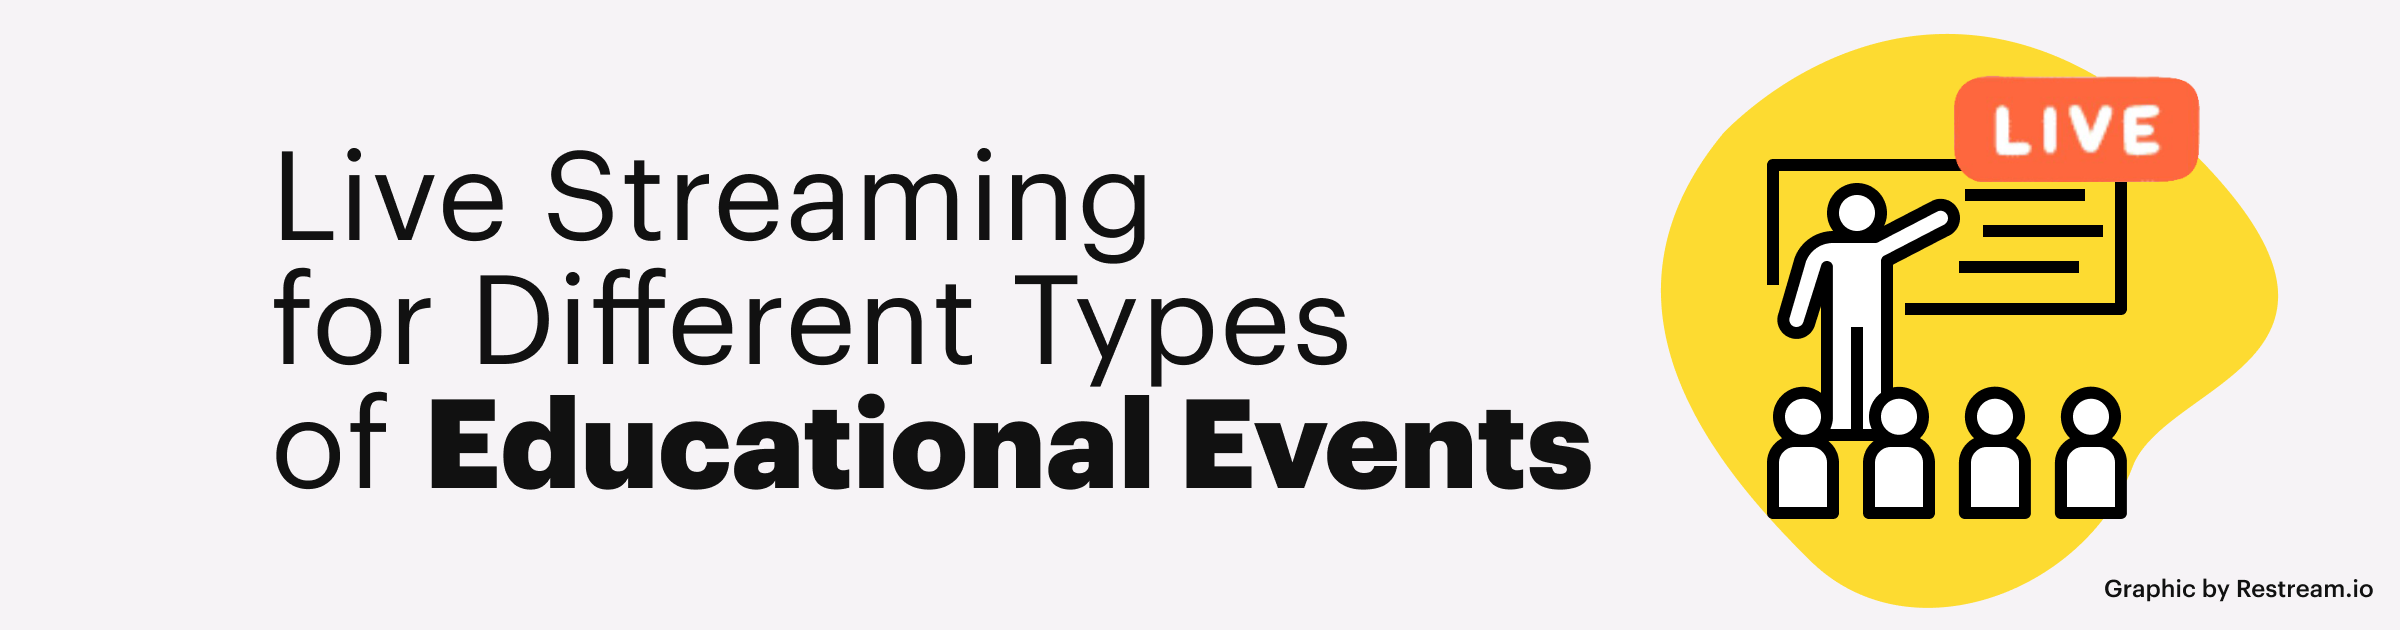 Live Streaming for Different Types of Educational Events